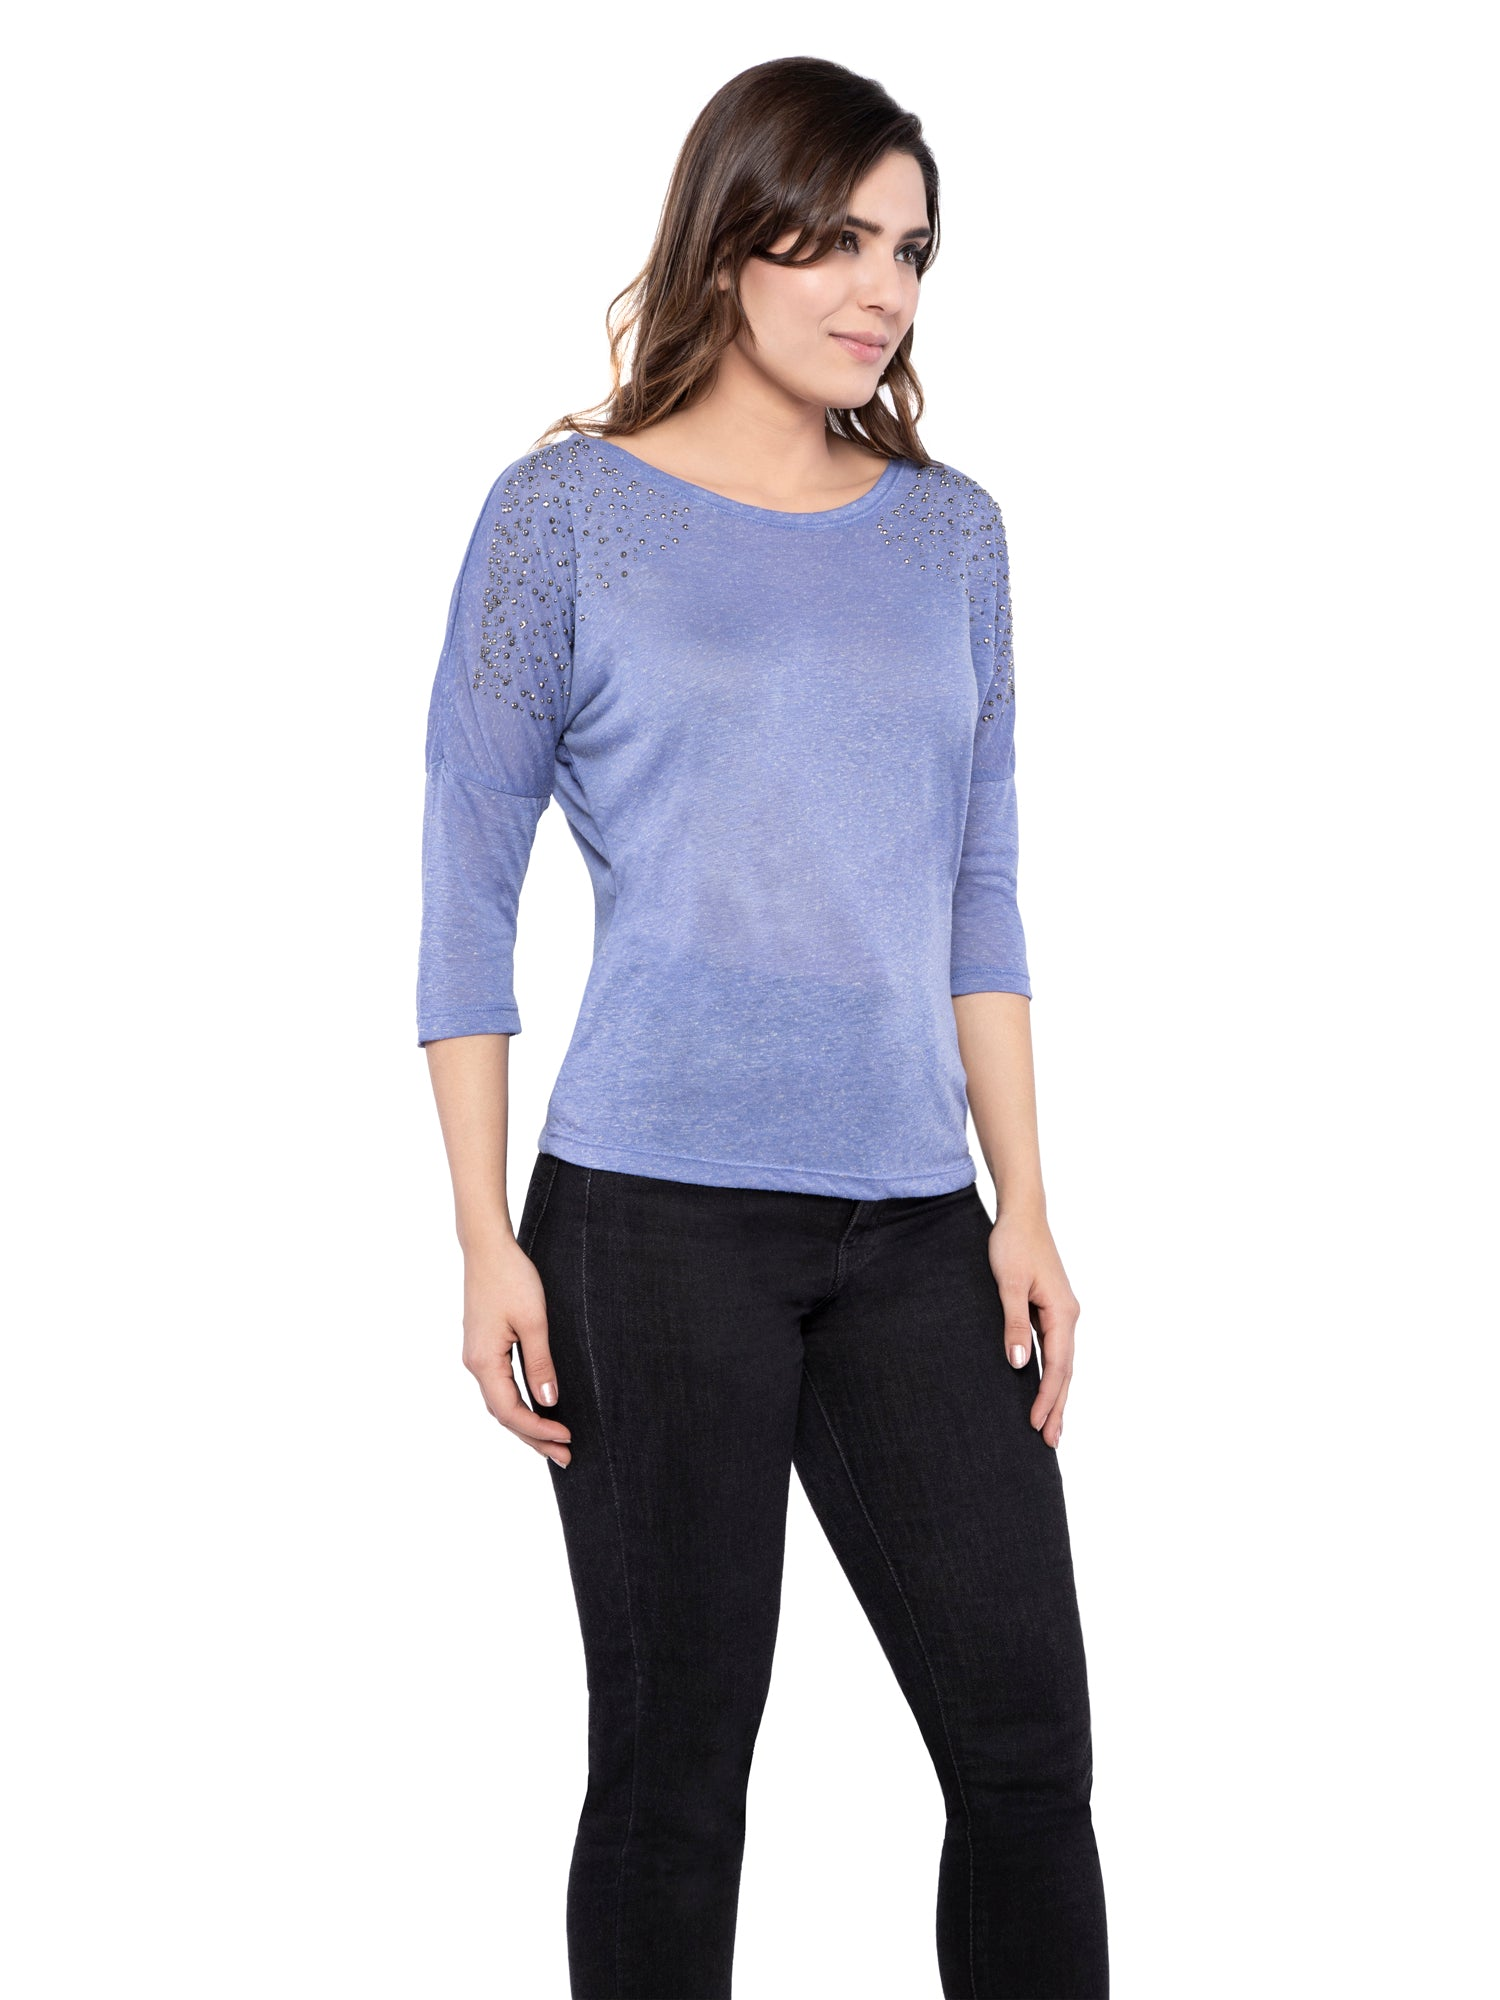 Ficuster Women Pearl Beaded Blue Top